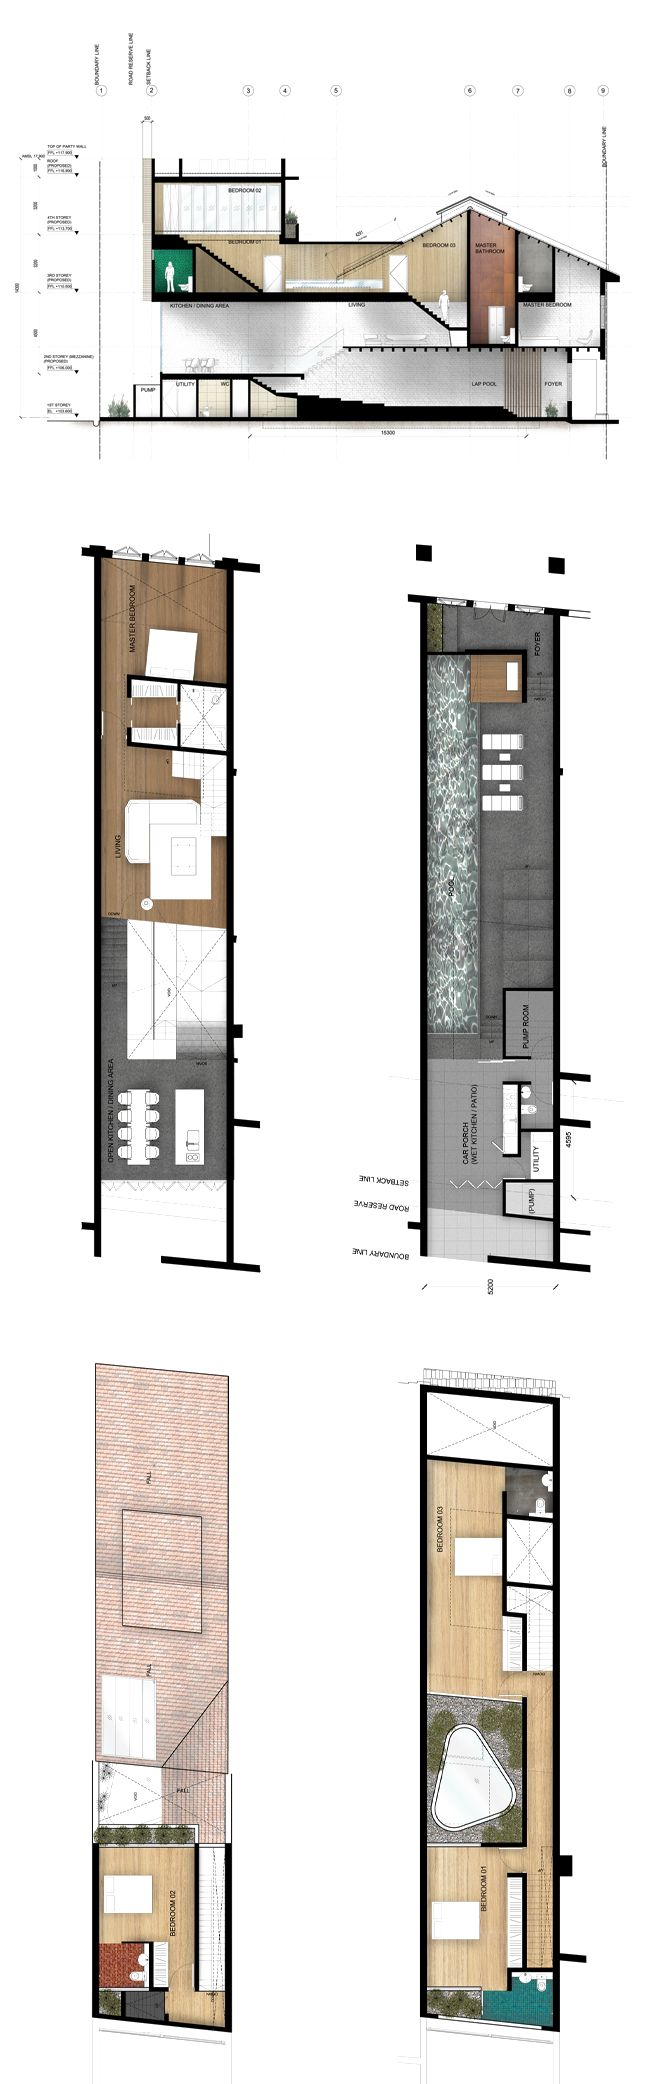 House N° 21- render floorplan (with material)